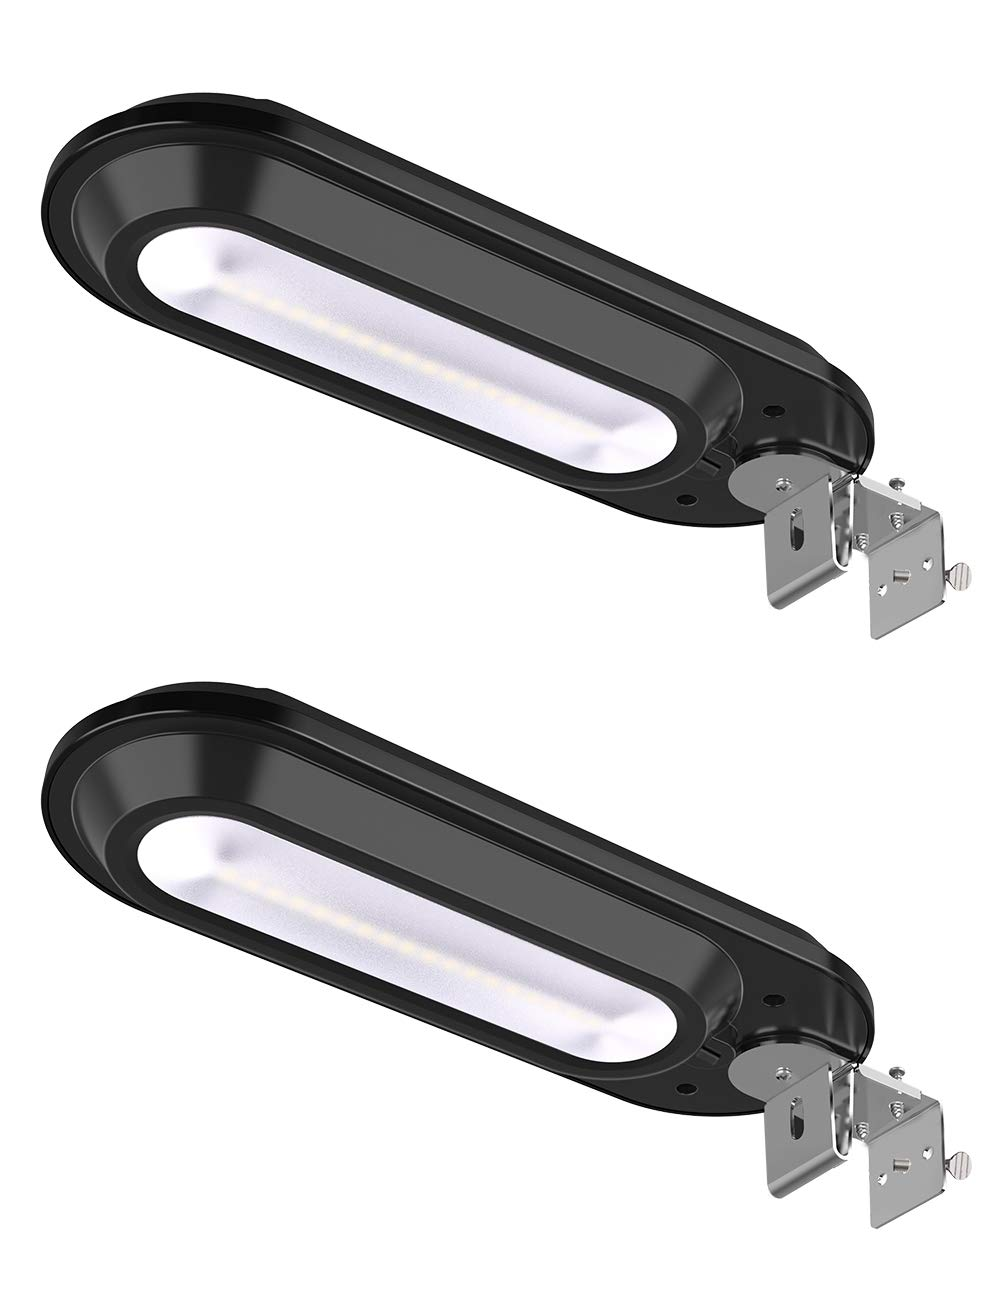 ROSHWEY Solar Gutter Lights Outdoor, Super Bright 18 LED Deck Light Waterproof Wall Lamps Dusk to Dawn for Garden Fence Garage Pathway (Pack of 2, Cool White Light) by ROSHWEY